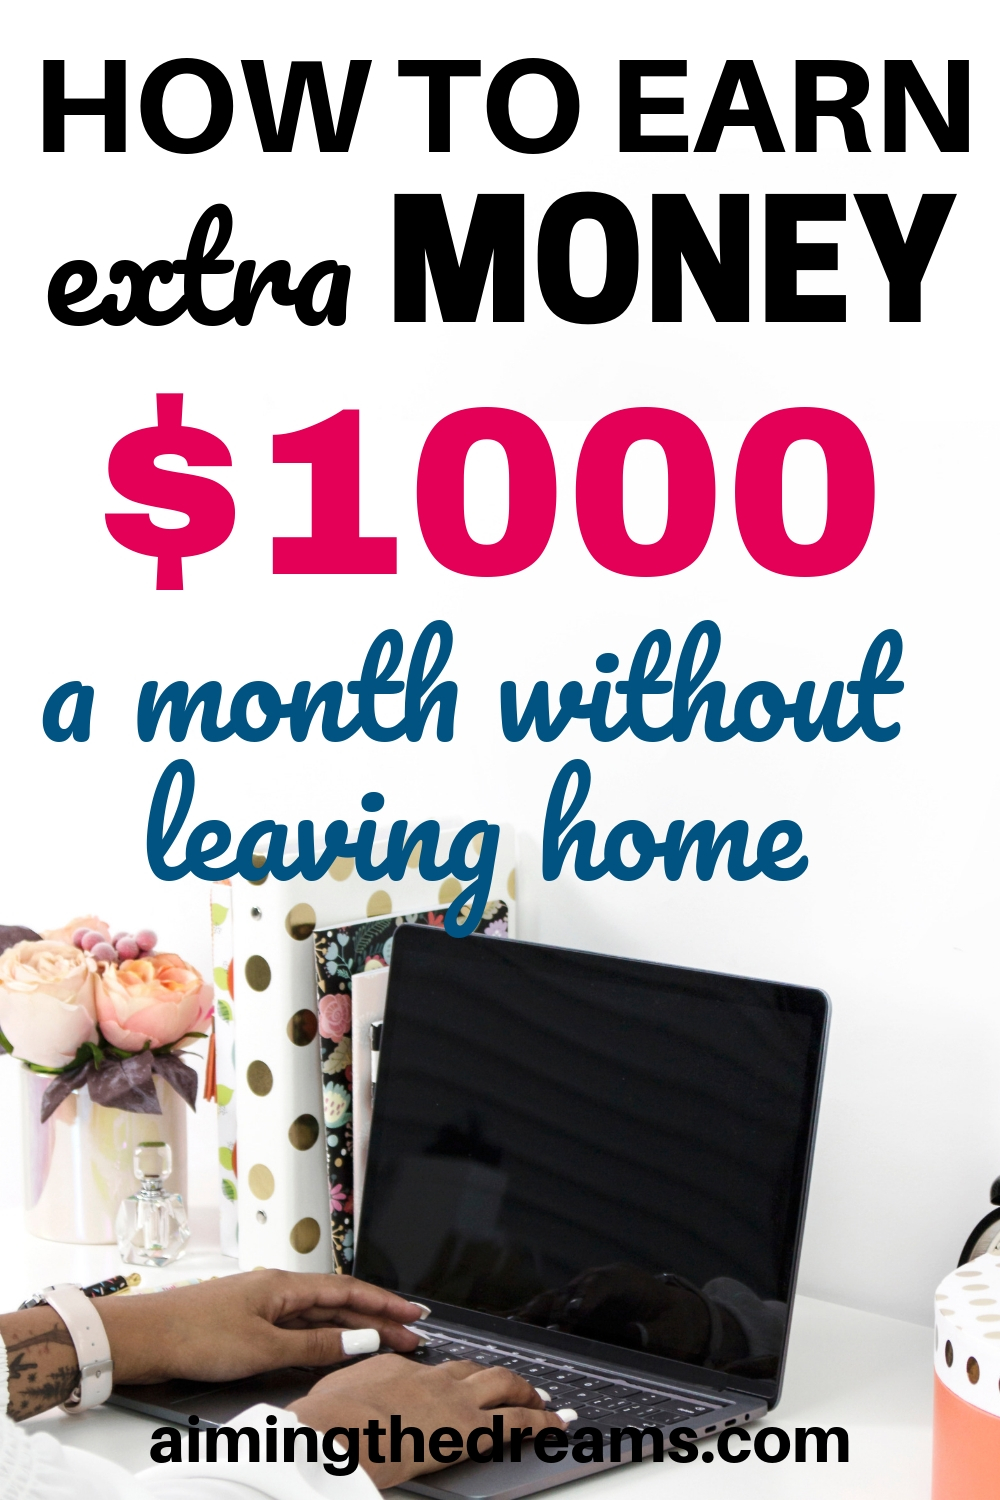 How to earn extra money $1000 a month without leaving home.